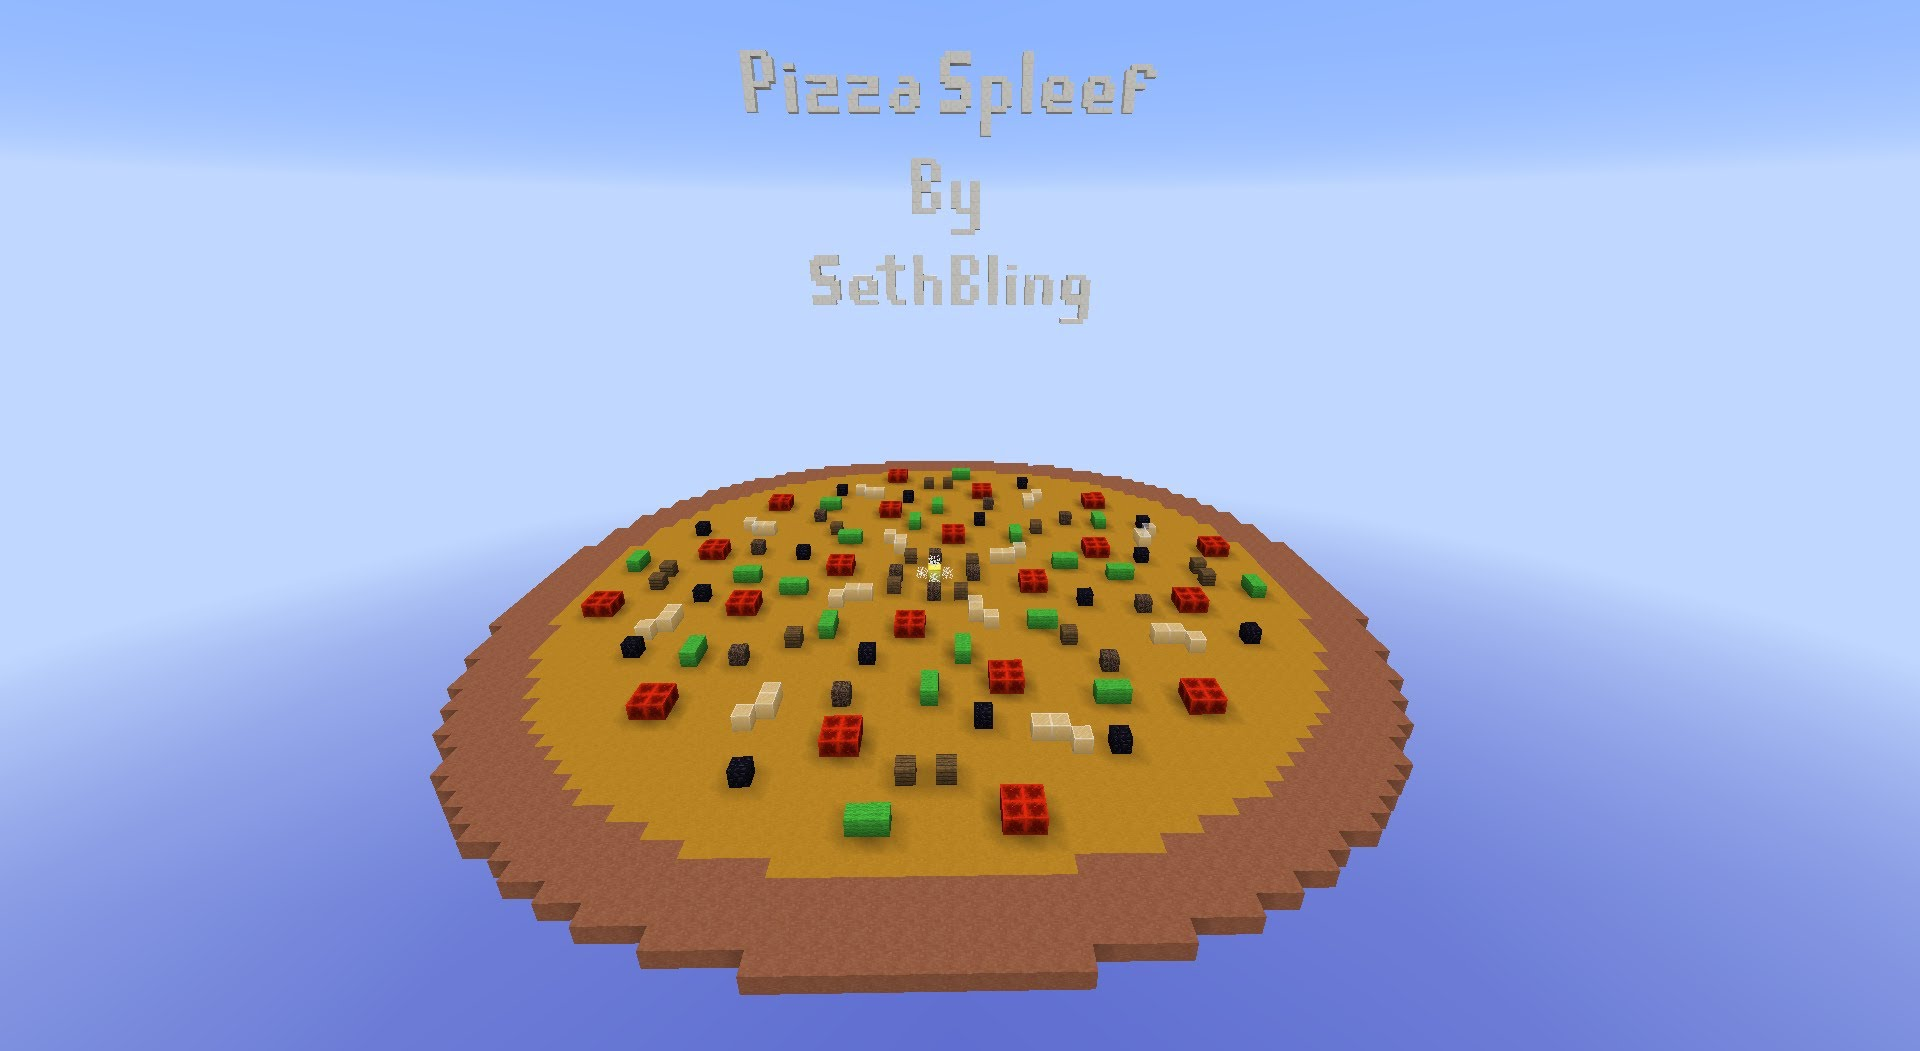 Pizza-Spleef-Minigame-Map-1